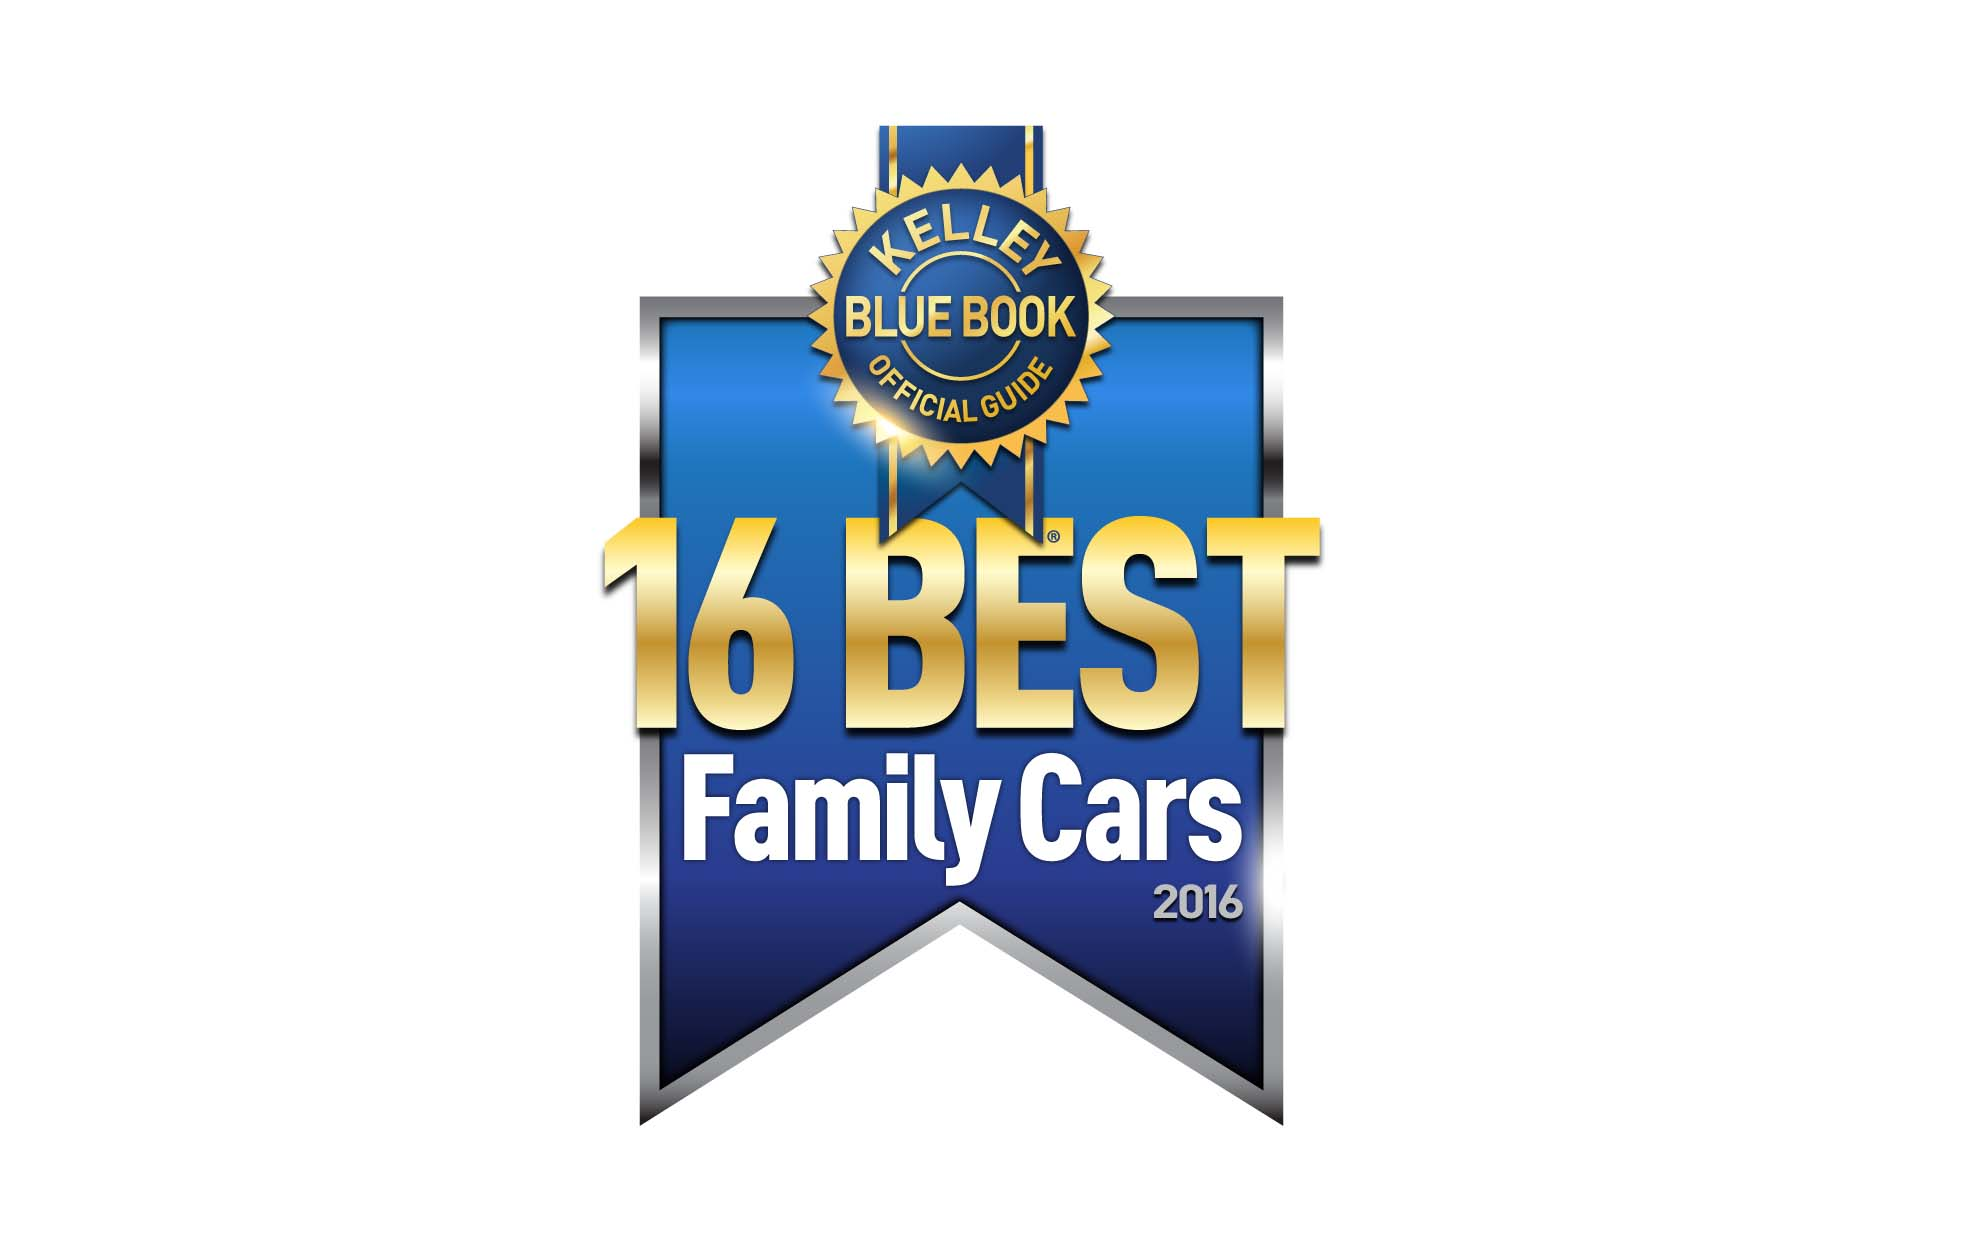 After extensively testing two dozen Best Family Cars finalists, the KBB.com editors decided upon a list of 16 vehicles that they feel best fit the title of Kelley Blue Book Best Family Cars of 2016.